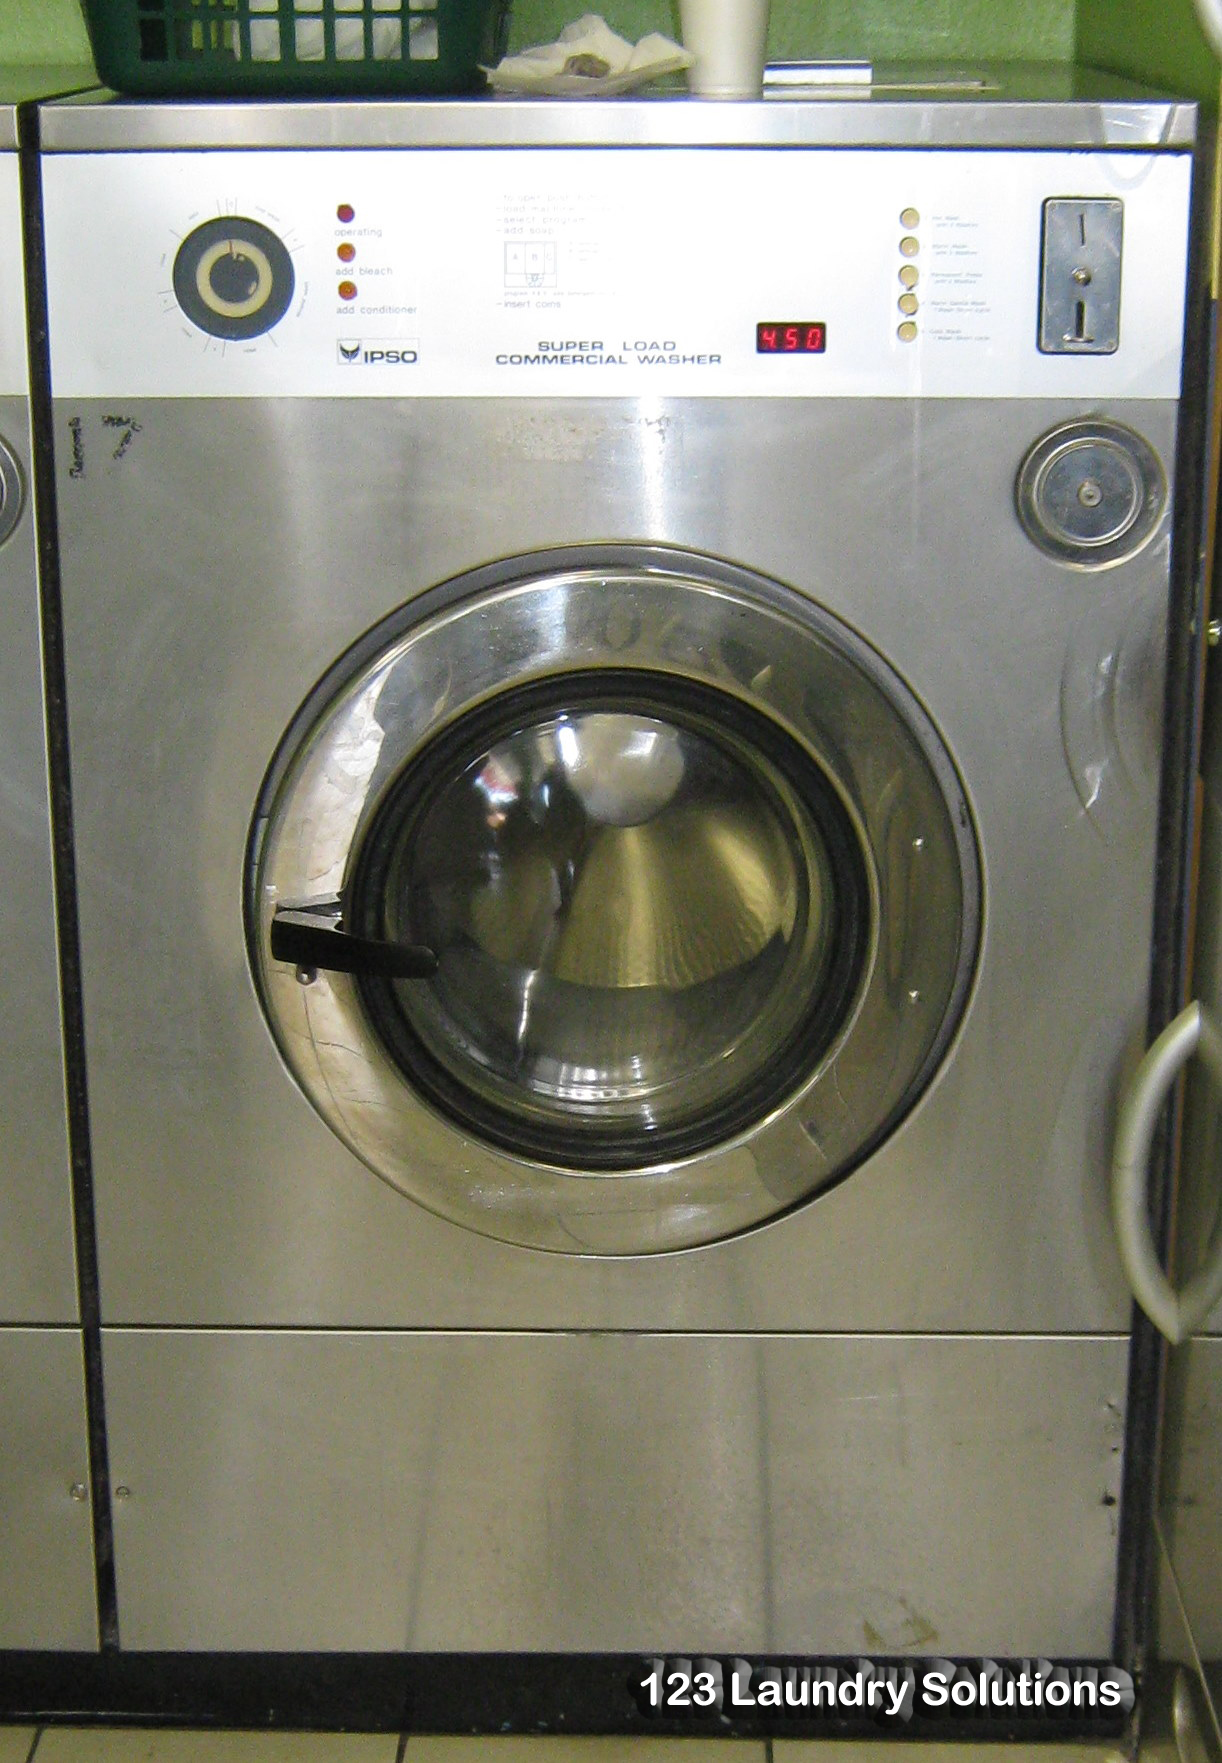 ipso 50 lb load washer extractor 3 ph 123 laundry solutions. Black Bedroom Furniture Sets. Home Design Ideas